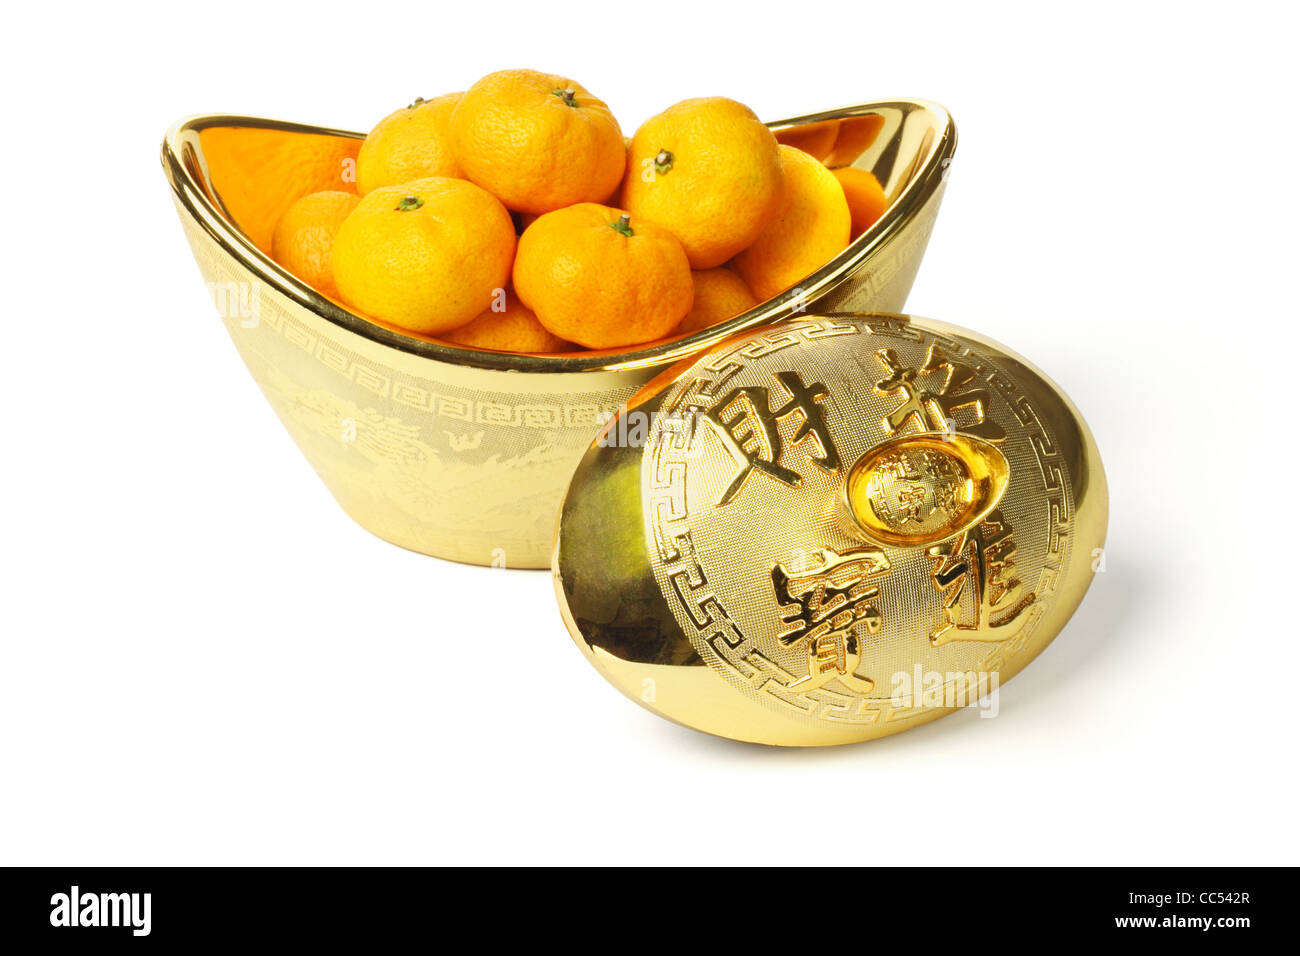 Mandarin oranges in gold ingot container on white background - Stock Image